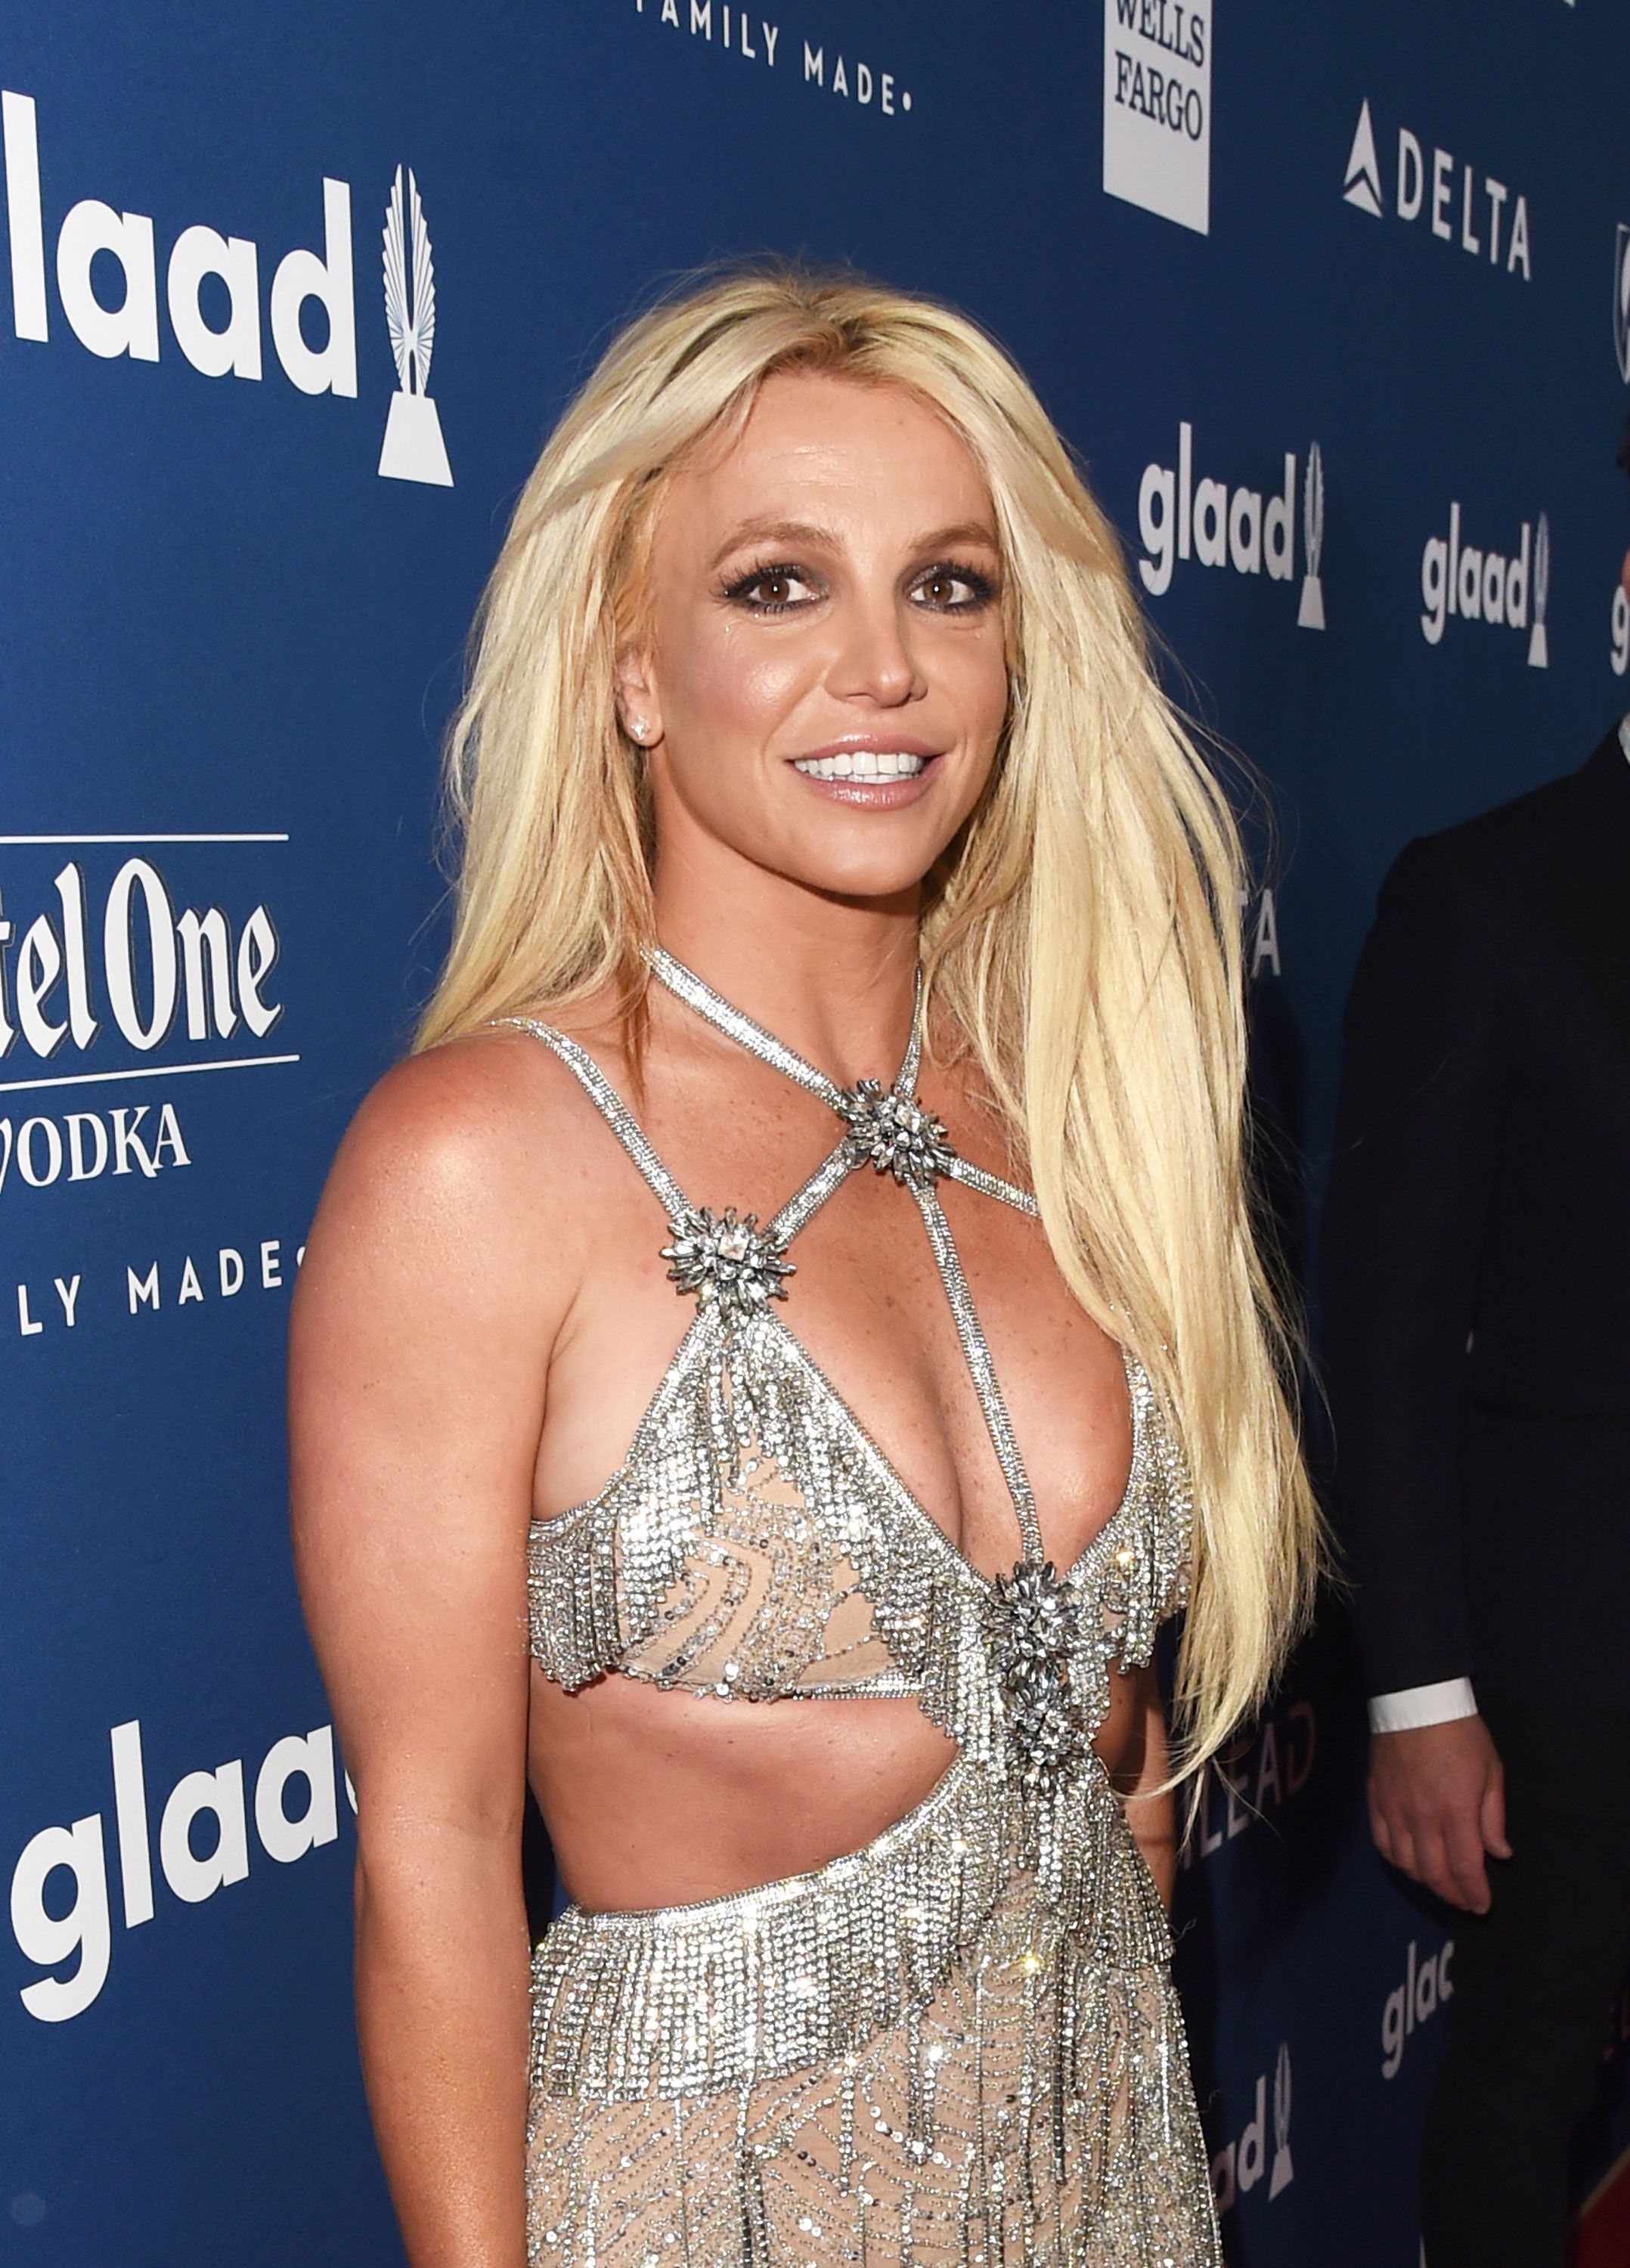 Britney Spears Just Posted a Workout Video During Her Mental Health Treatment